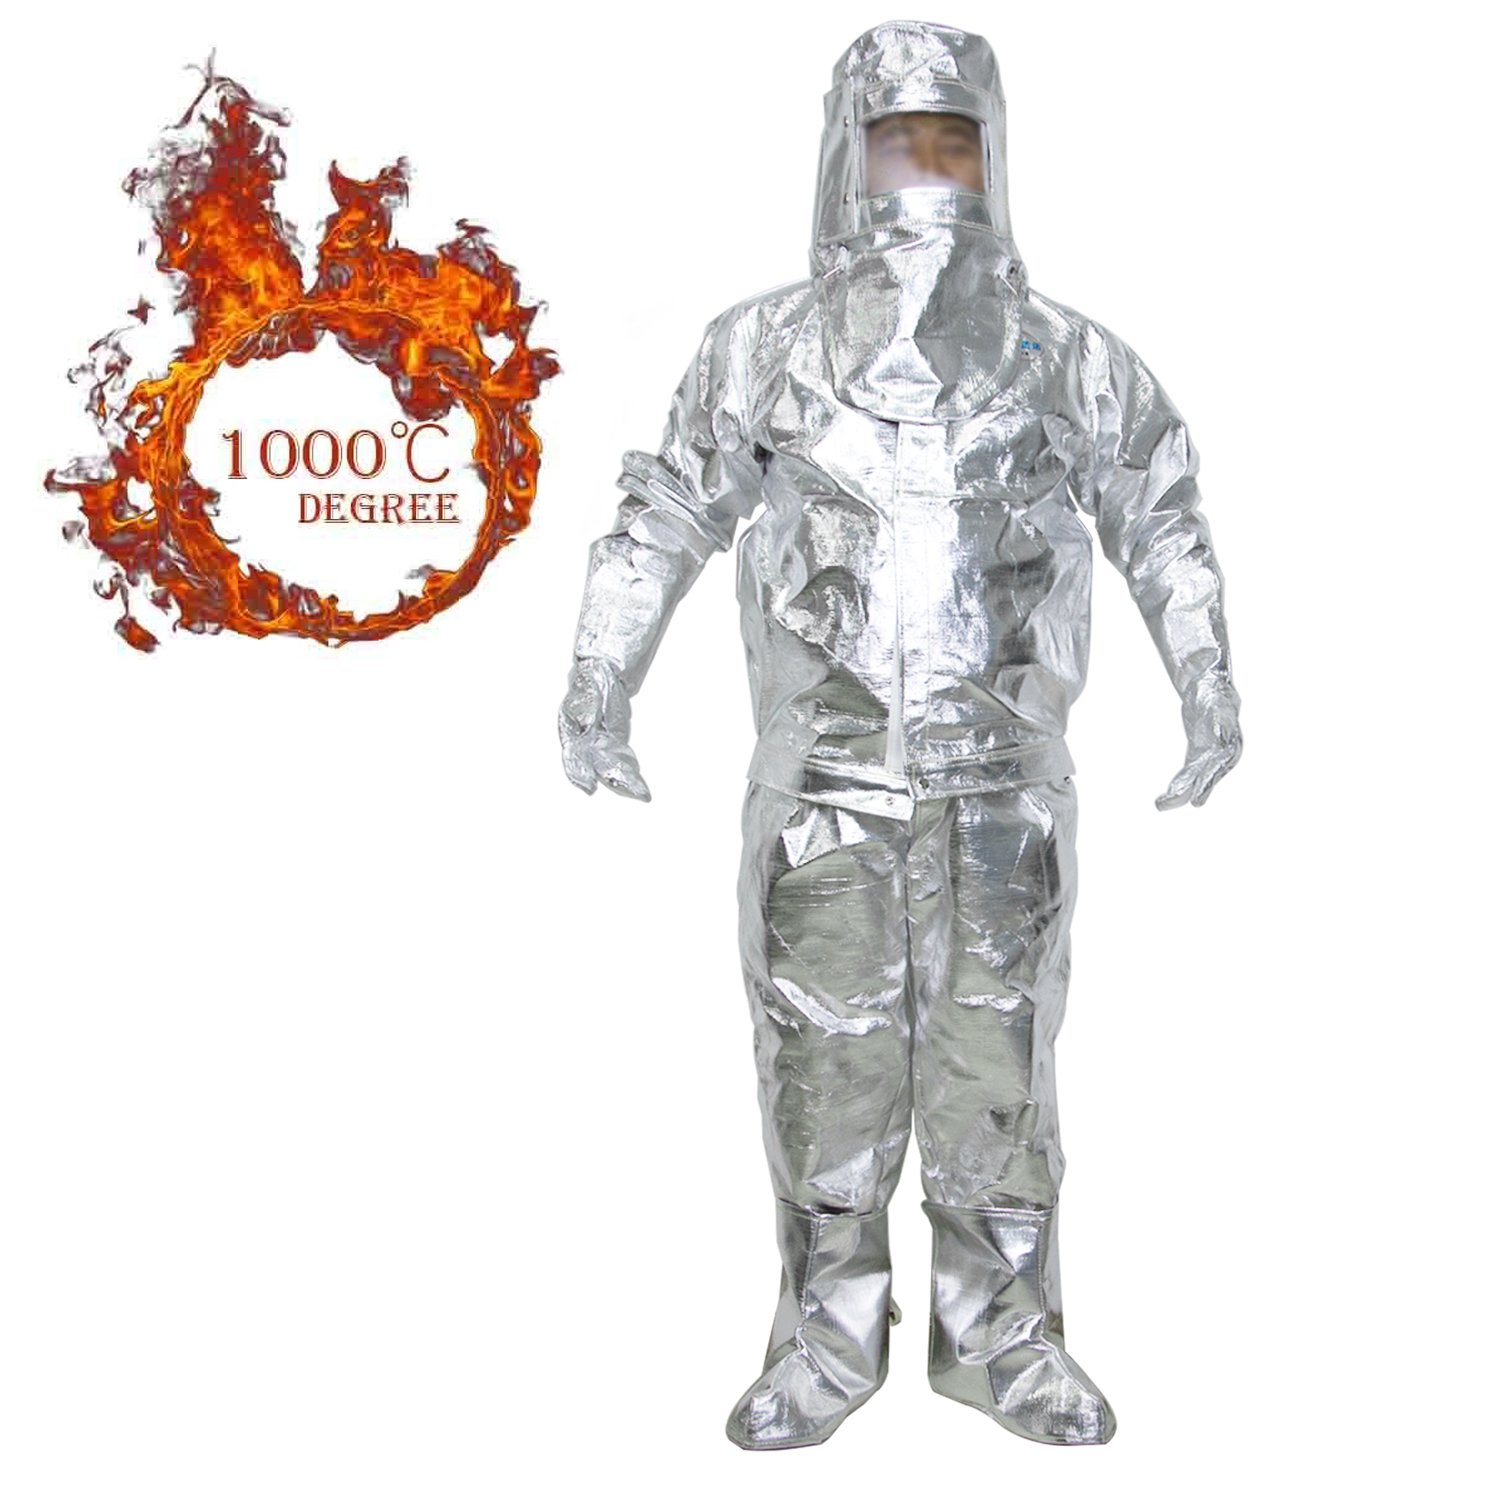 Webetop Aluminum Foil Heat Resistant Thermal Radiation 1000 Degree Centigrade Fire-proof Suit,Include 1 Coat,1 Pant,1 Helmet,1 Glove,1 Boot Cover,EC/CCS Approval,M by Webetop